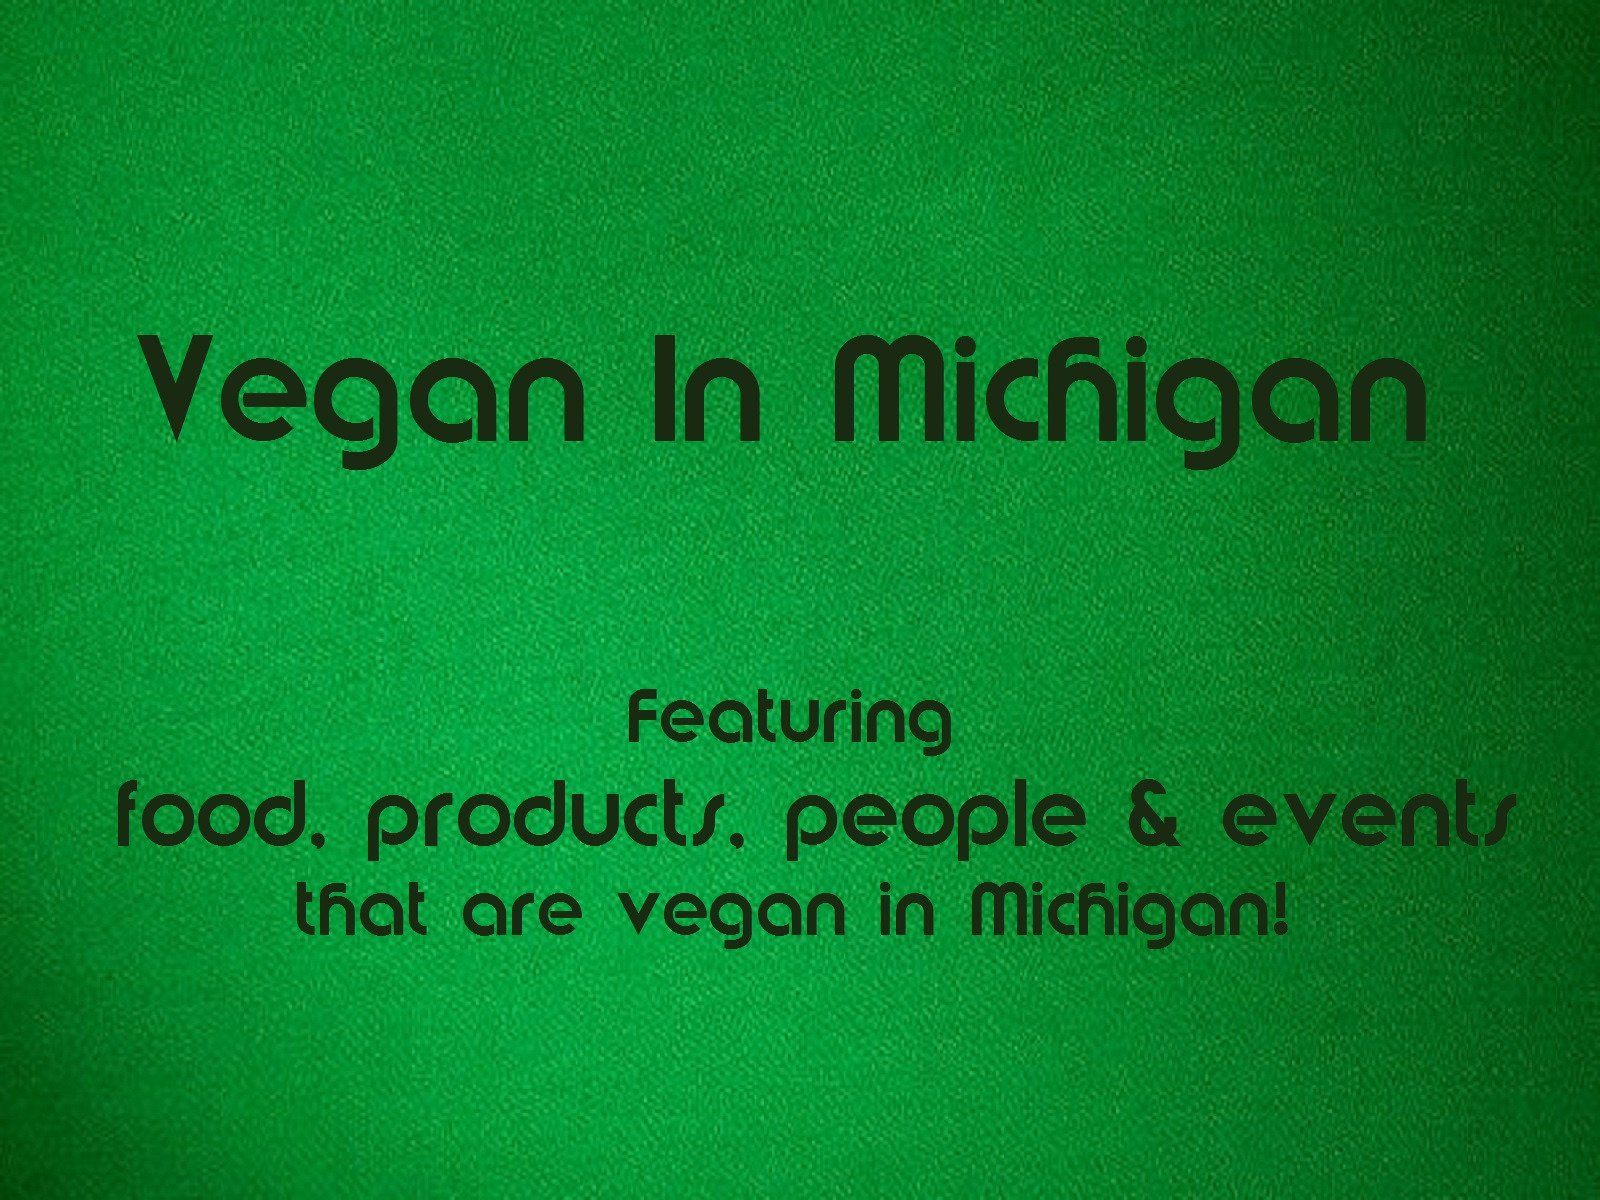 Vegan In Michigan - Season 1